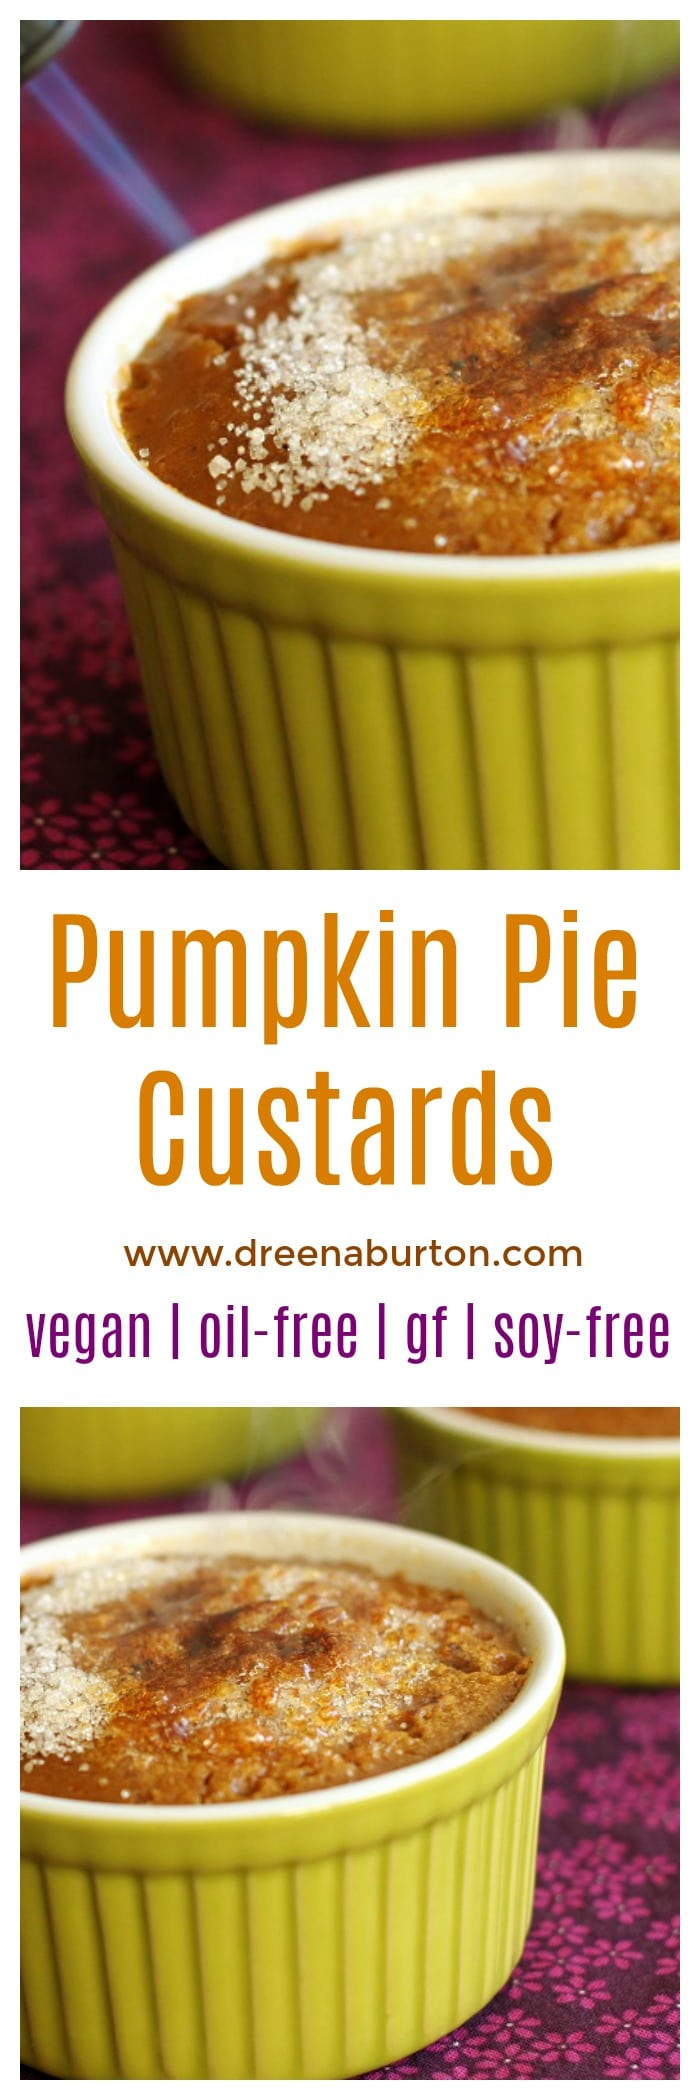 DIVINE! Impressive but EASY! Pumpkin Pie Custards - dairy-free, vegan, gluten-free, oil-free, and soy-free! | pumpkin vegan recipes | vegan fall recipes | vegan fall desserts | vegan custard recipe | gluten-free pumpkin recipes | gluten-free fall recipes | gluten-free desserts | oil-free pumpkin recipes | oil-free fall recipes | oil-free dessert recipes | soy-free fall recipes | soy-free pumpkin recipes | soy-free dessert recipes || Plant Powered Kitchen